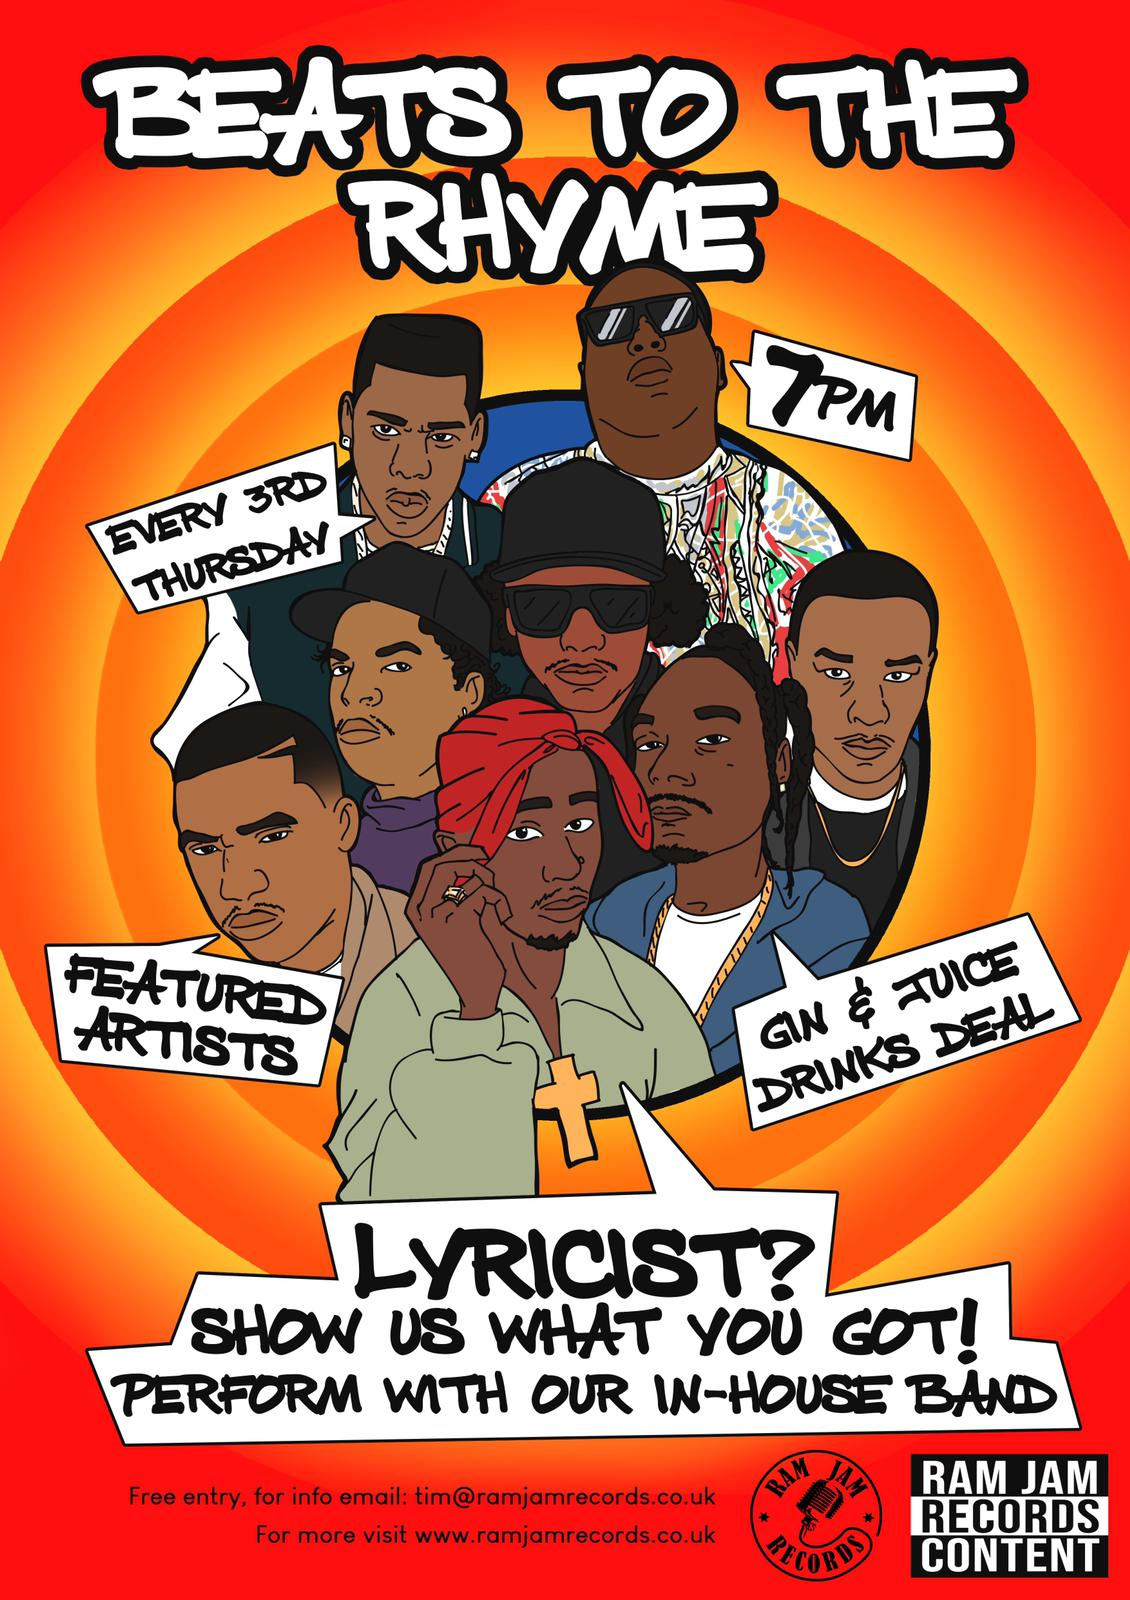 Every 3rd Thursday Ram Jam Records' House Hip-hop band Tune Squad plays, with opportunity for lyricists to freestyle at the end.